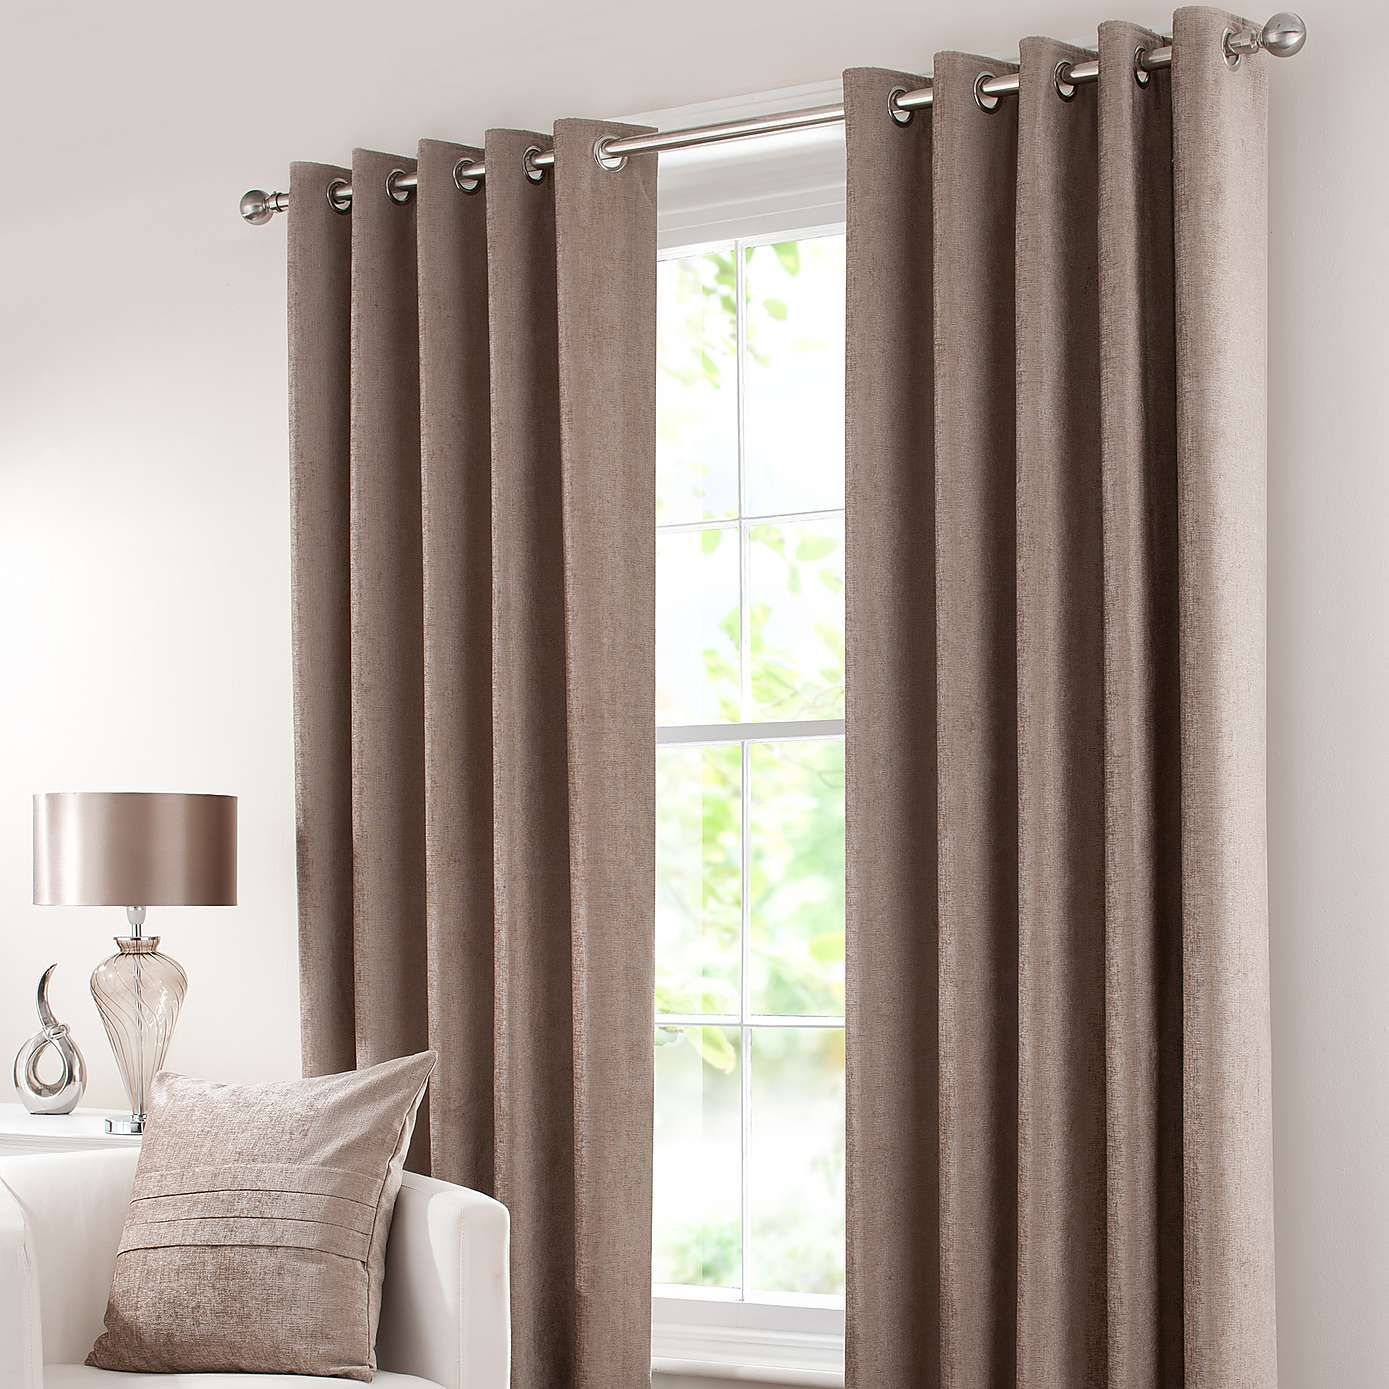 OUR LIVING ROOM CURTAINS COLOR Taupe Chenille Lined Eyelet Curtains